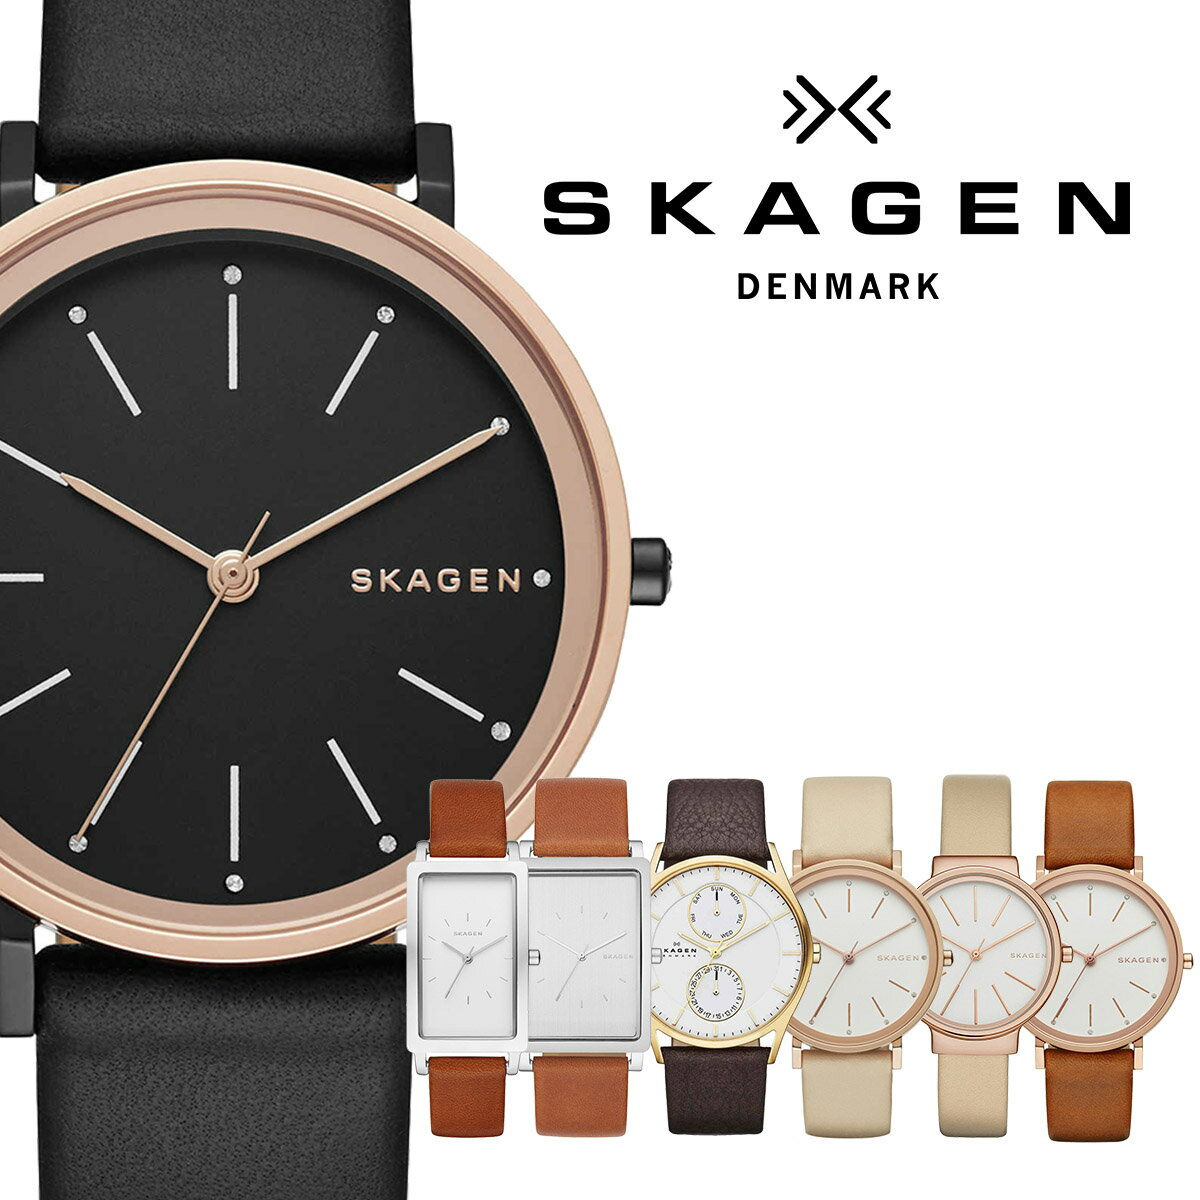 SKAGEN スカーゲン 7タイプ skw2464 skw6289 skw2490 skw6066 skw2489 skw2481 skw2488 時計 腕時計 メンズ レディース ユニセックス 北欧 スリム プレゼント ギフト [海外正規商品][送料無料][あす楽]